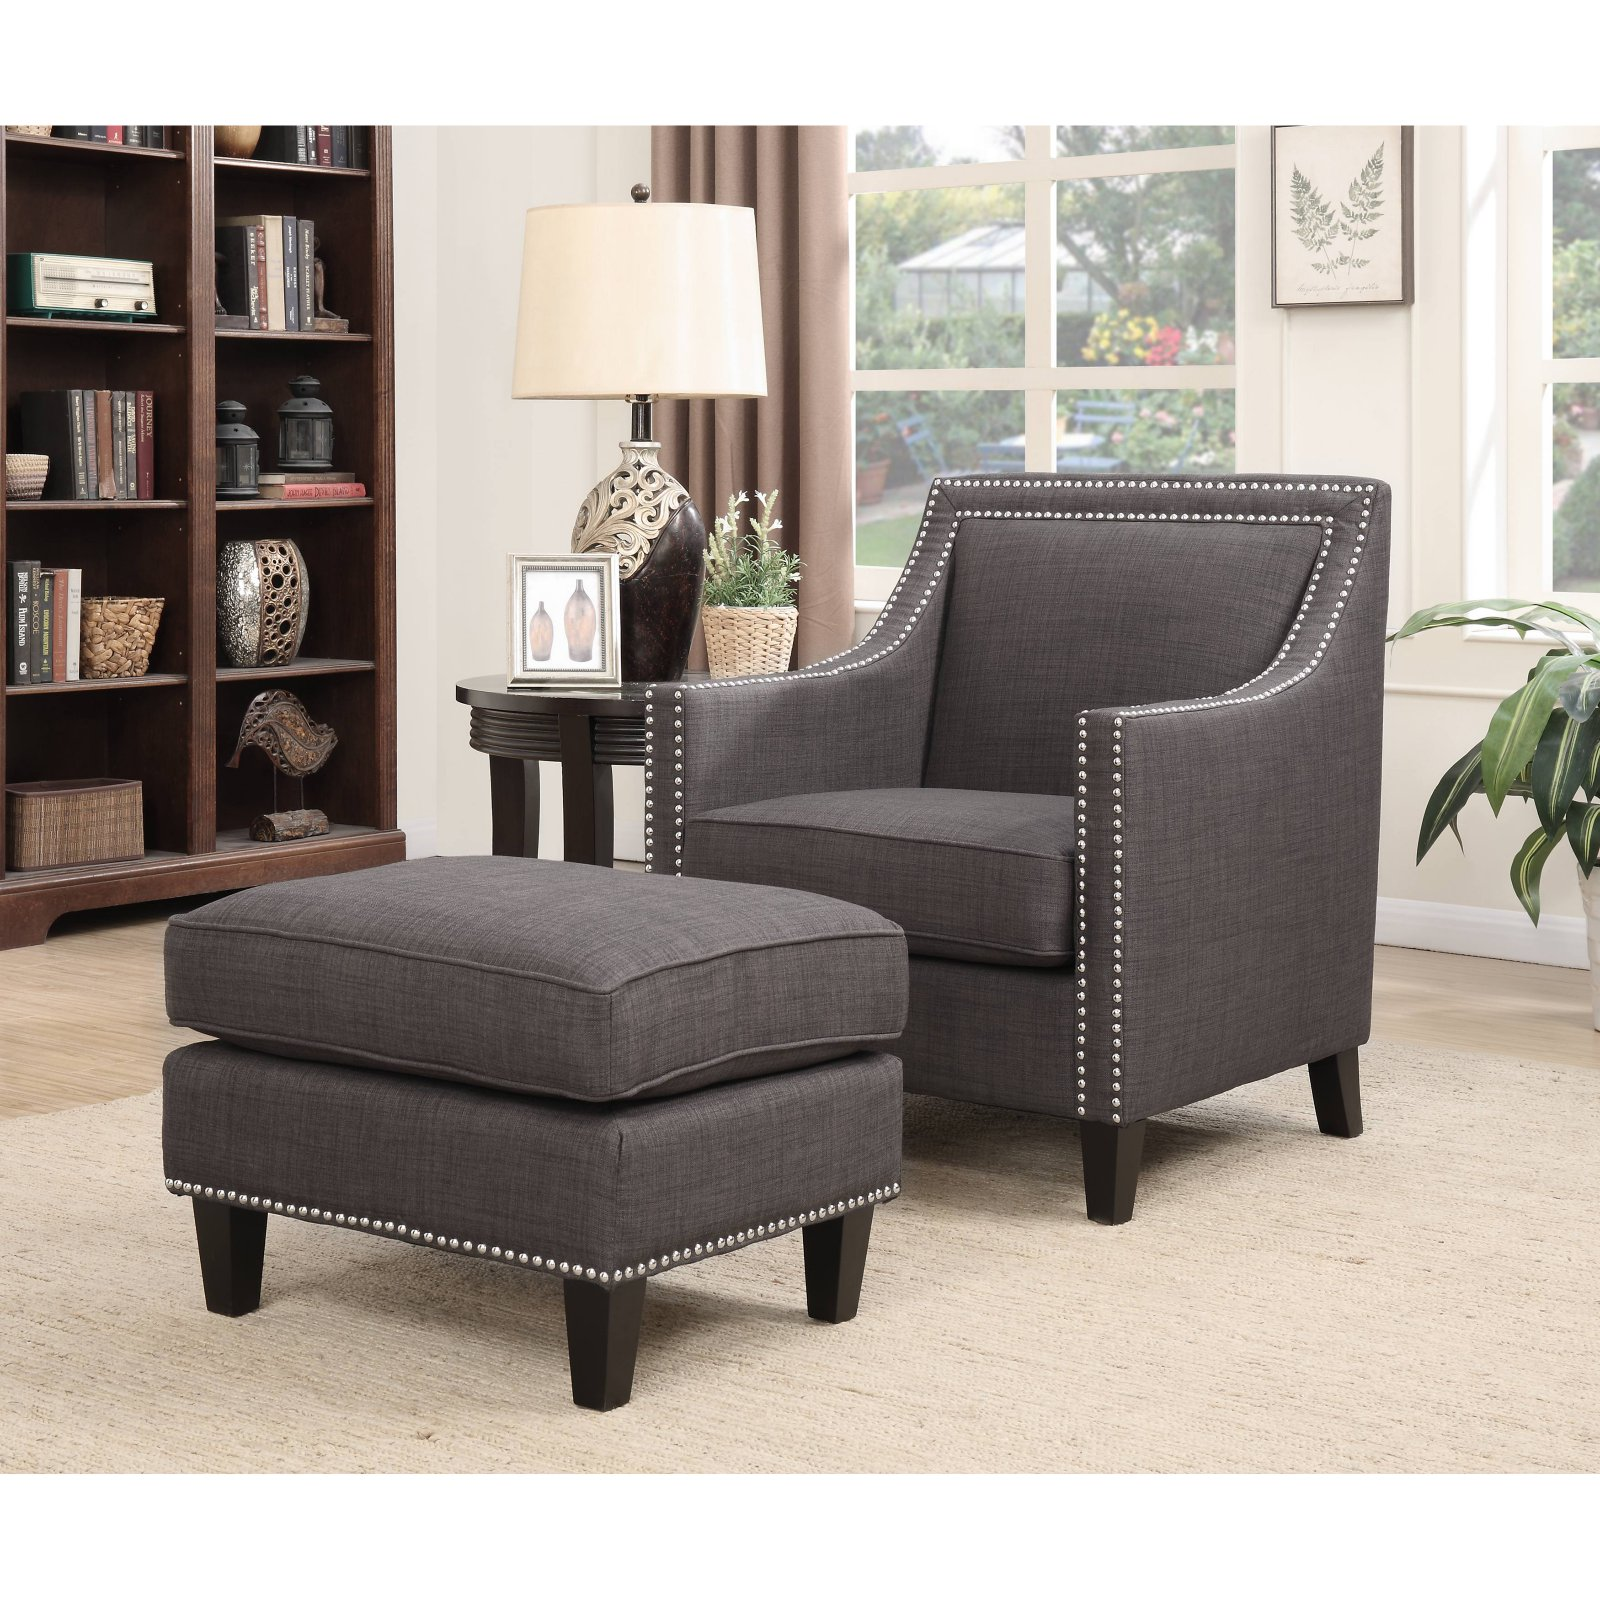 Hannigan Accent Chair Ottoman: Picket House Emery Accent Chair With Ottoman